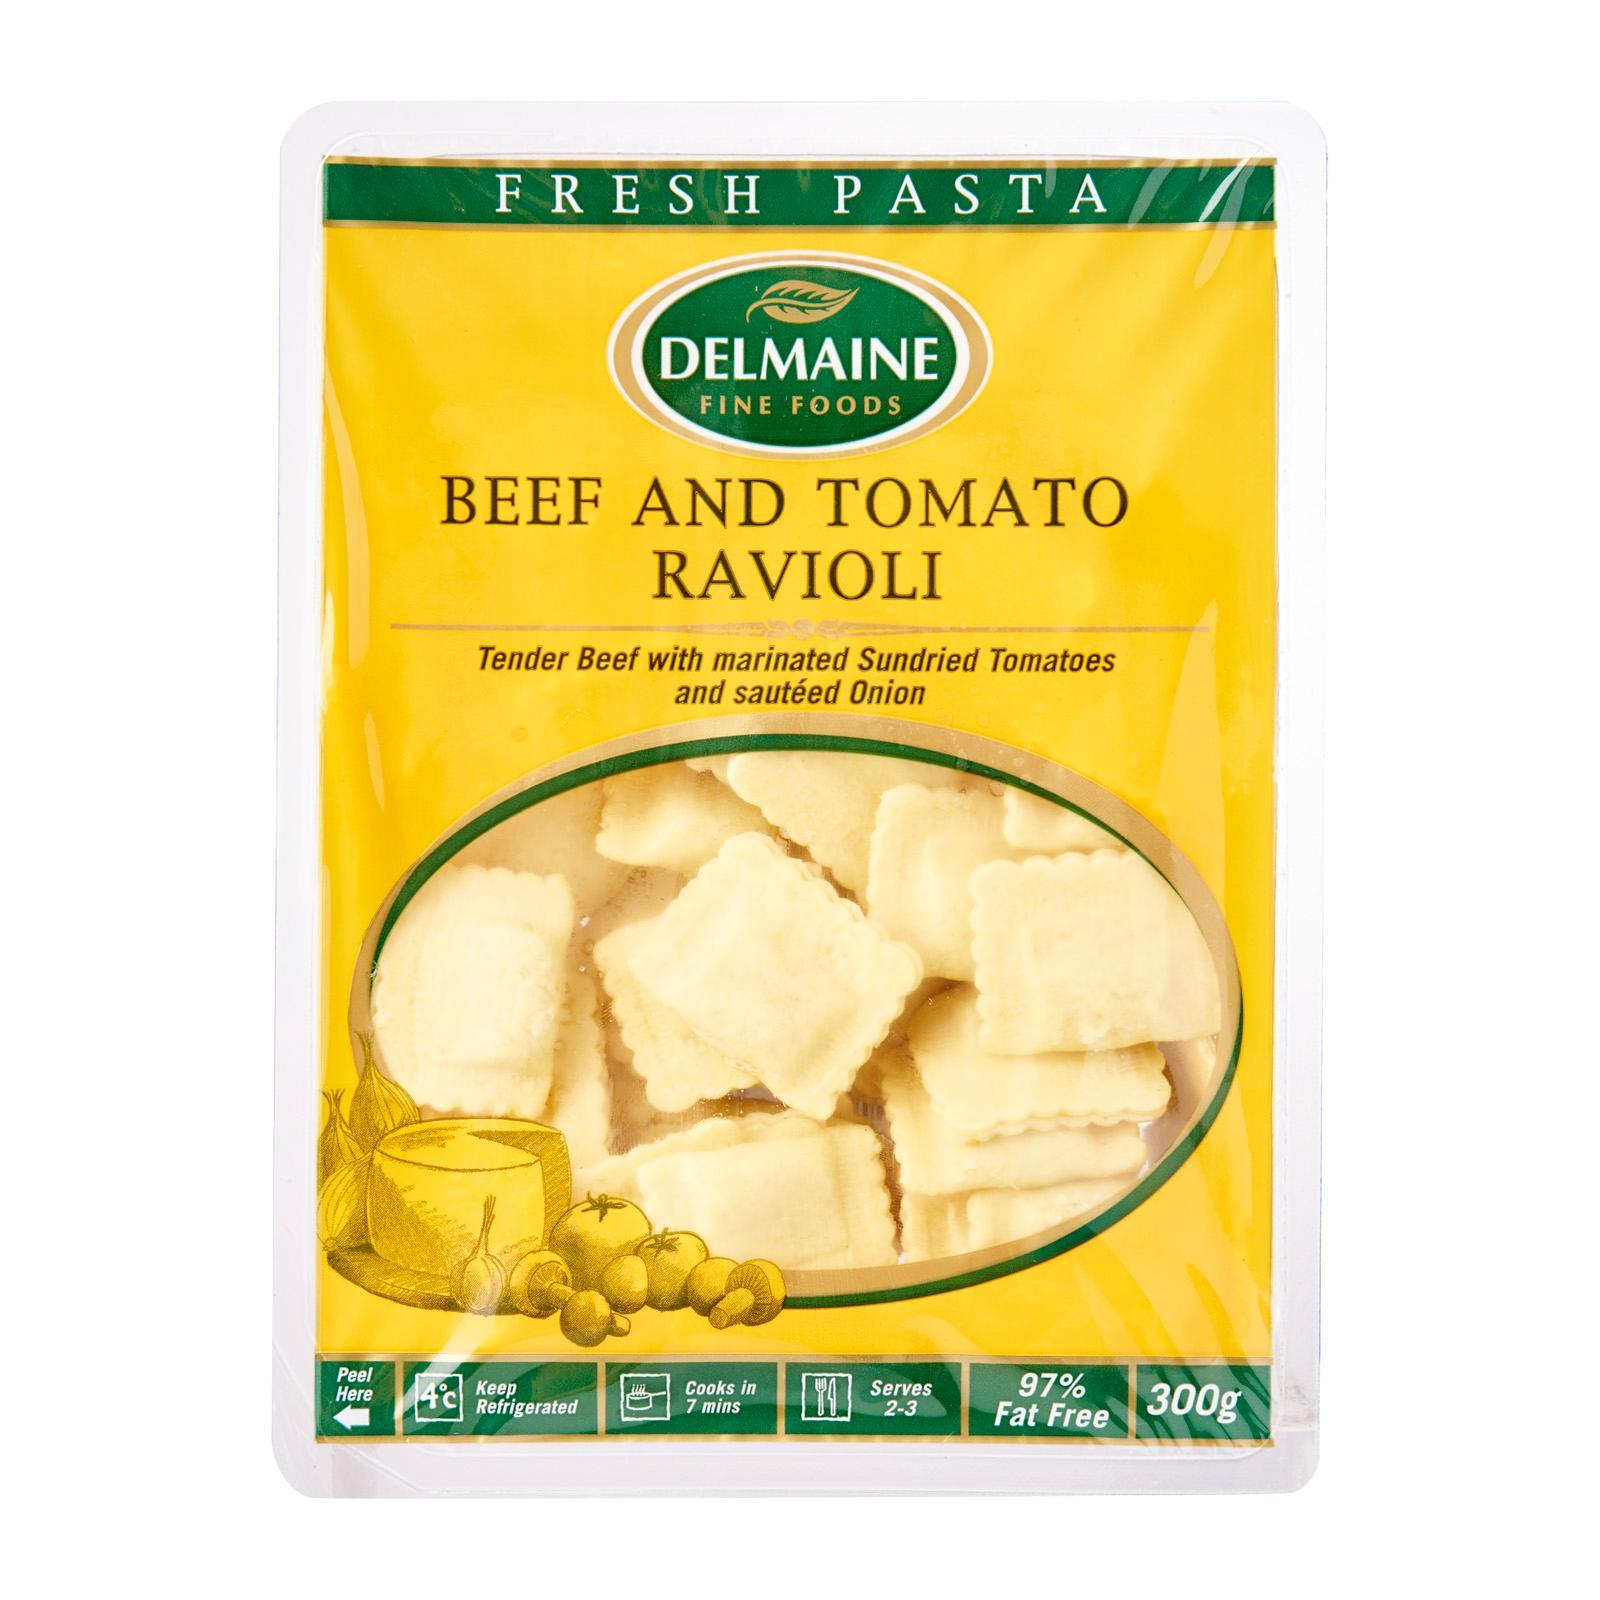 Delmaine Beef And Tomato Ravioli Filled Pasta By Redmart.